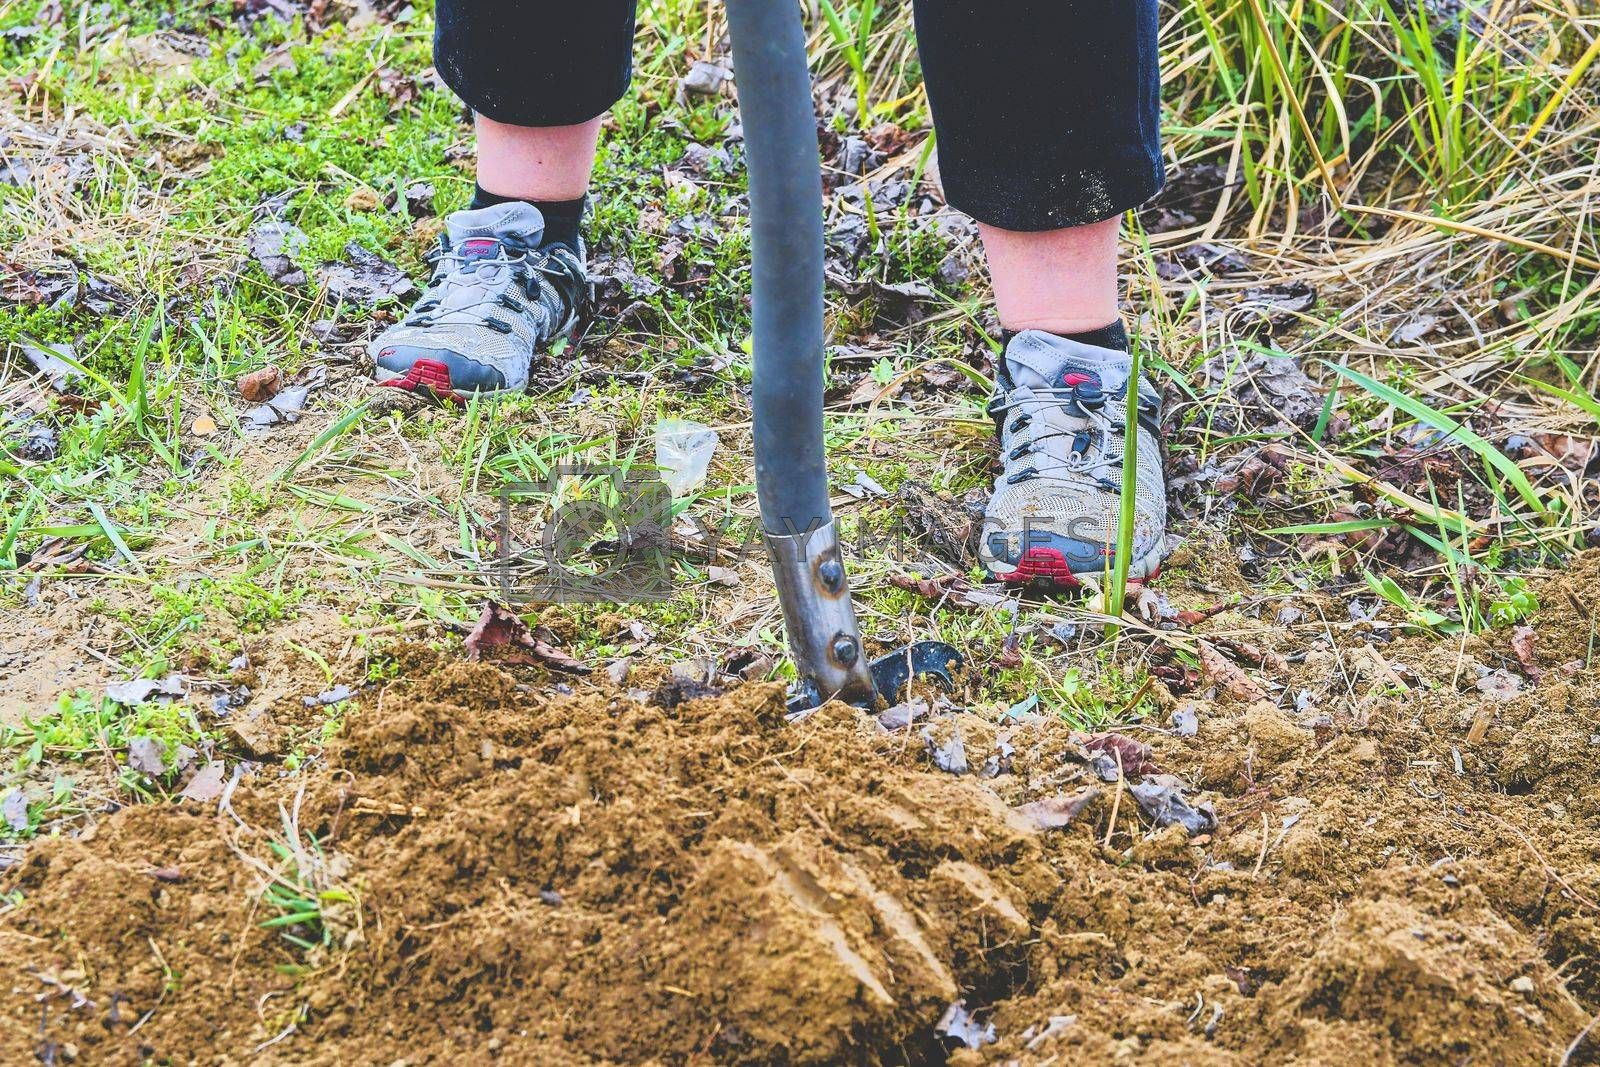 Woman digging soil with garden fork. Gardening and hobby concept.